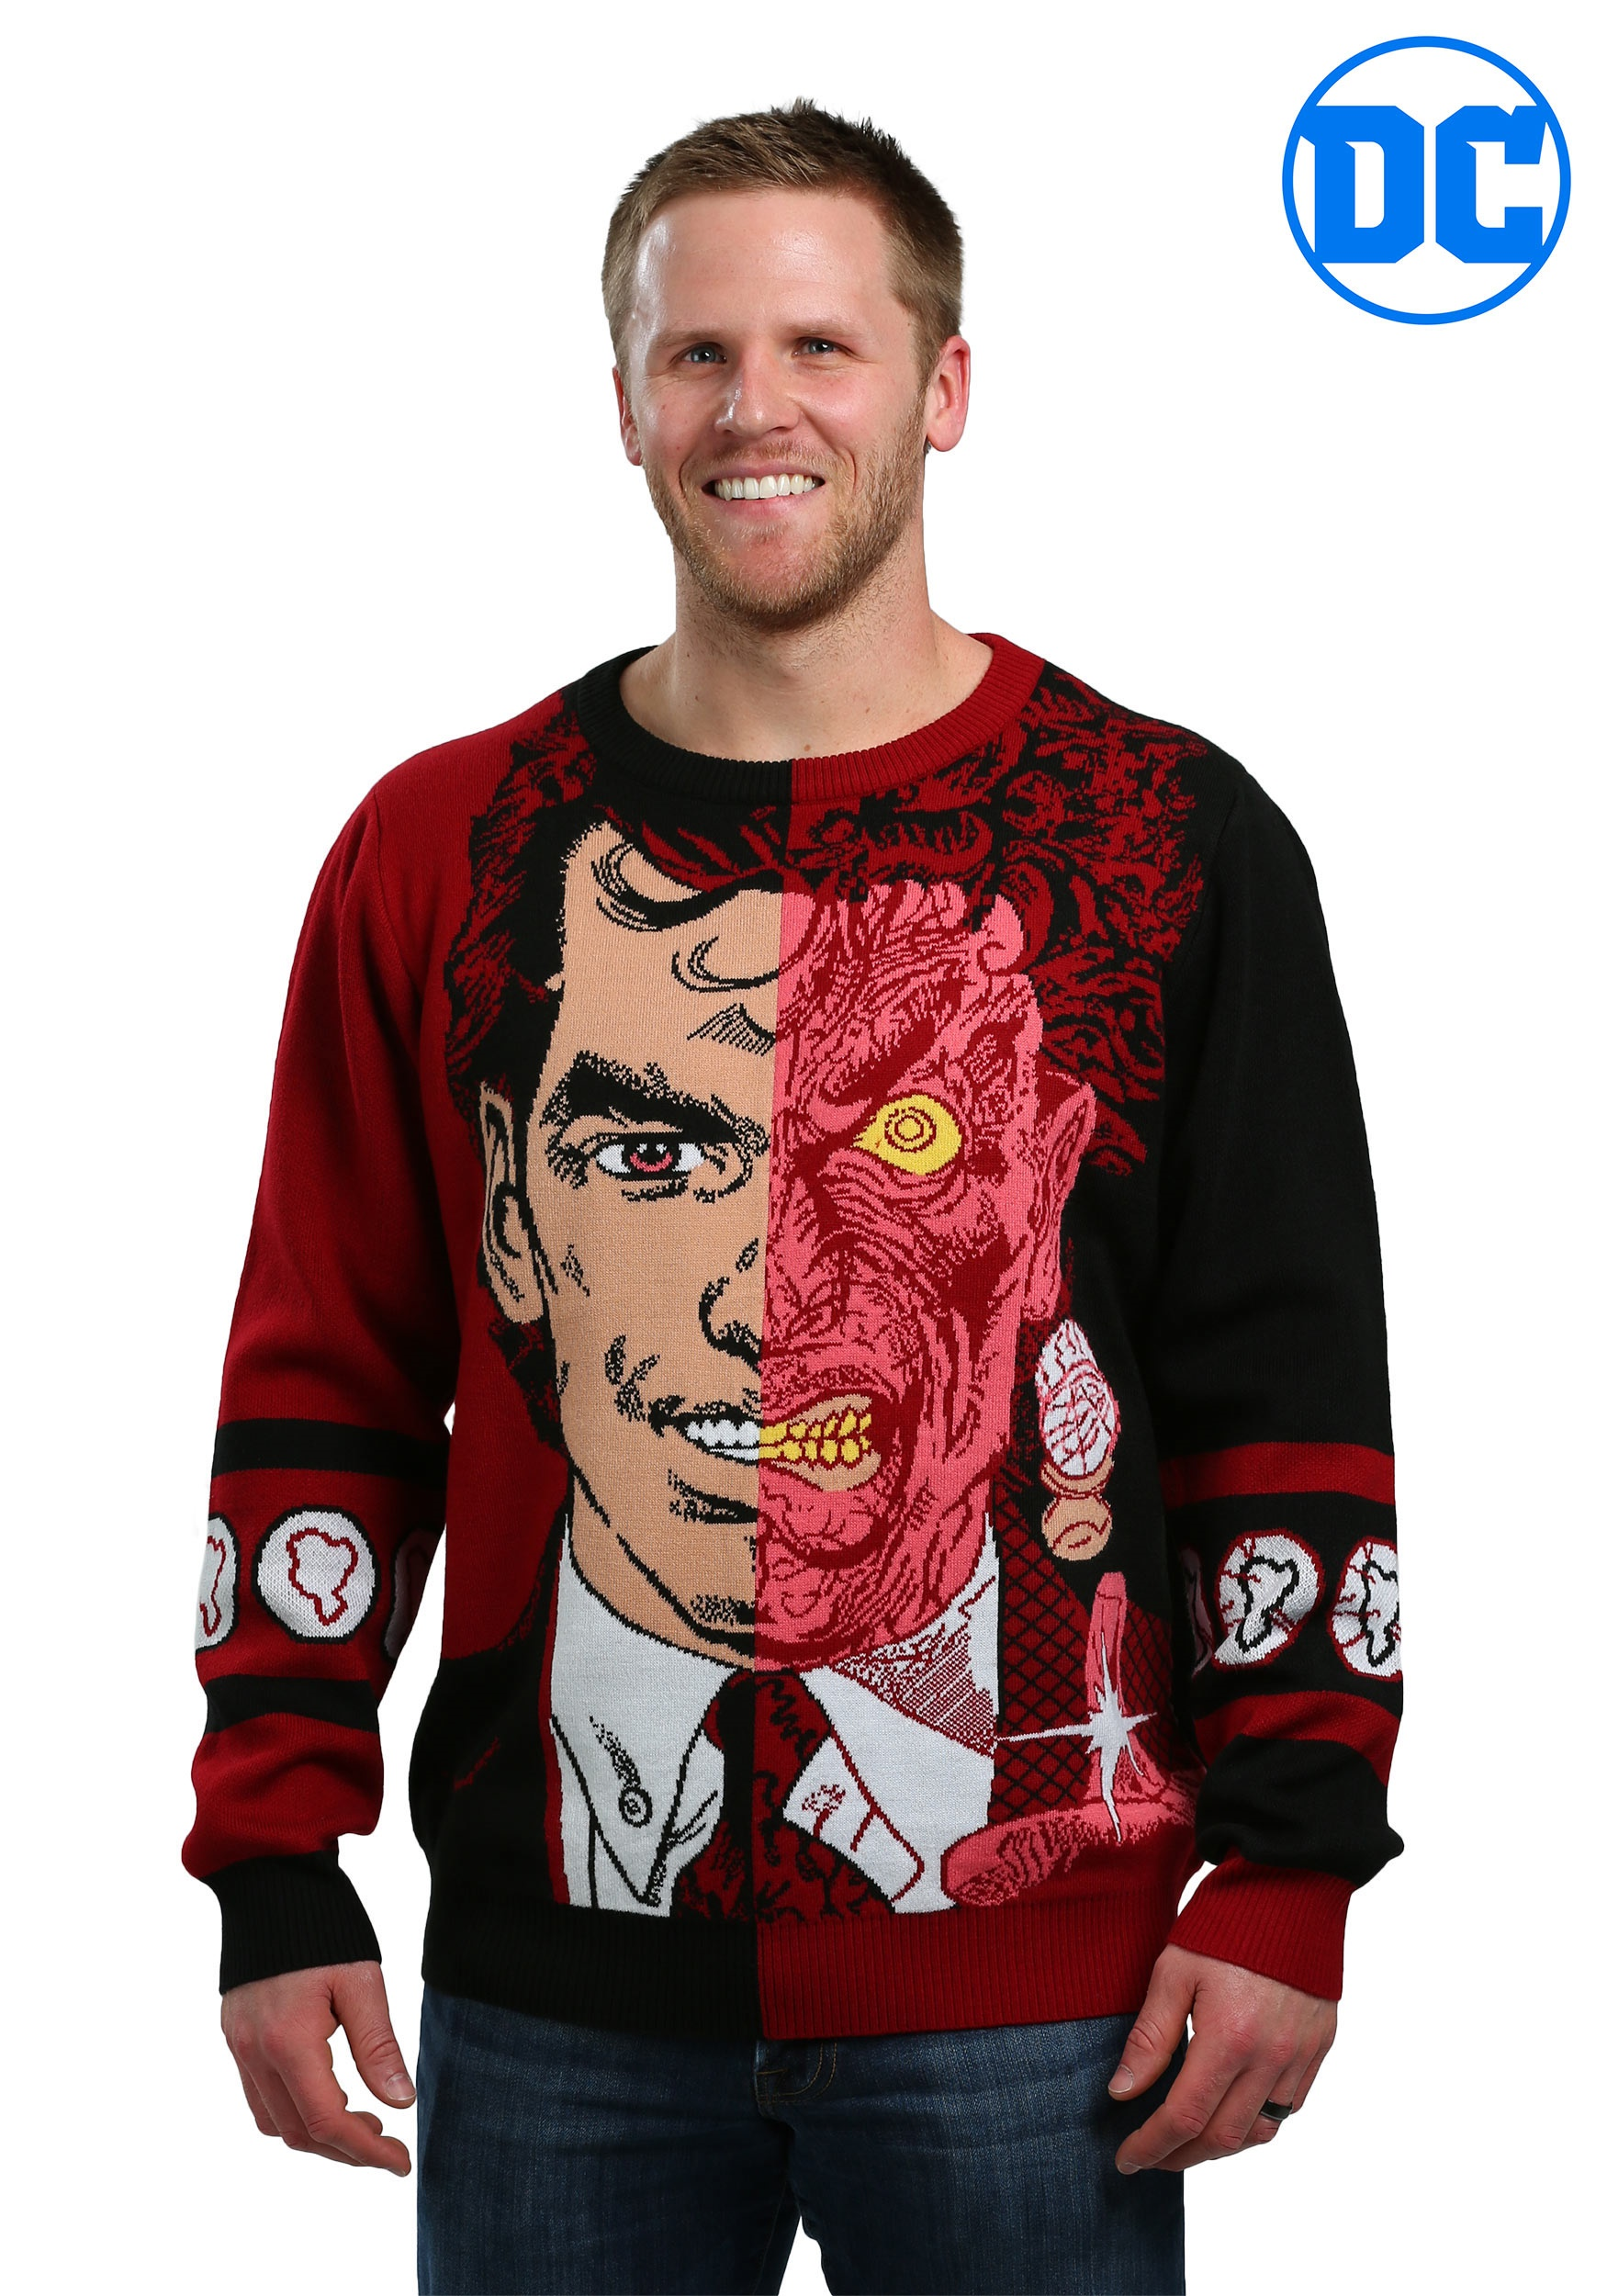 Dc Christmas Sweater.Two Face Pullover Ugly Christmas Sweater